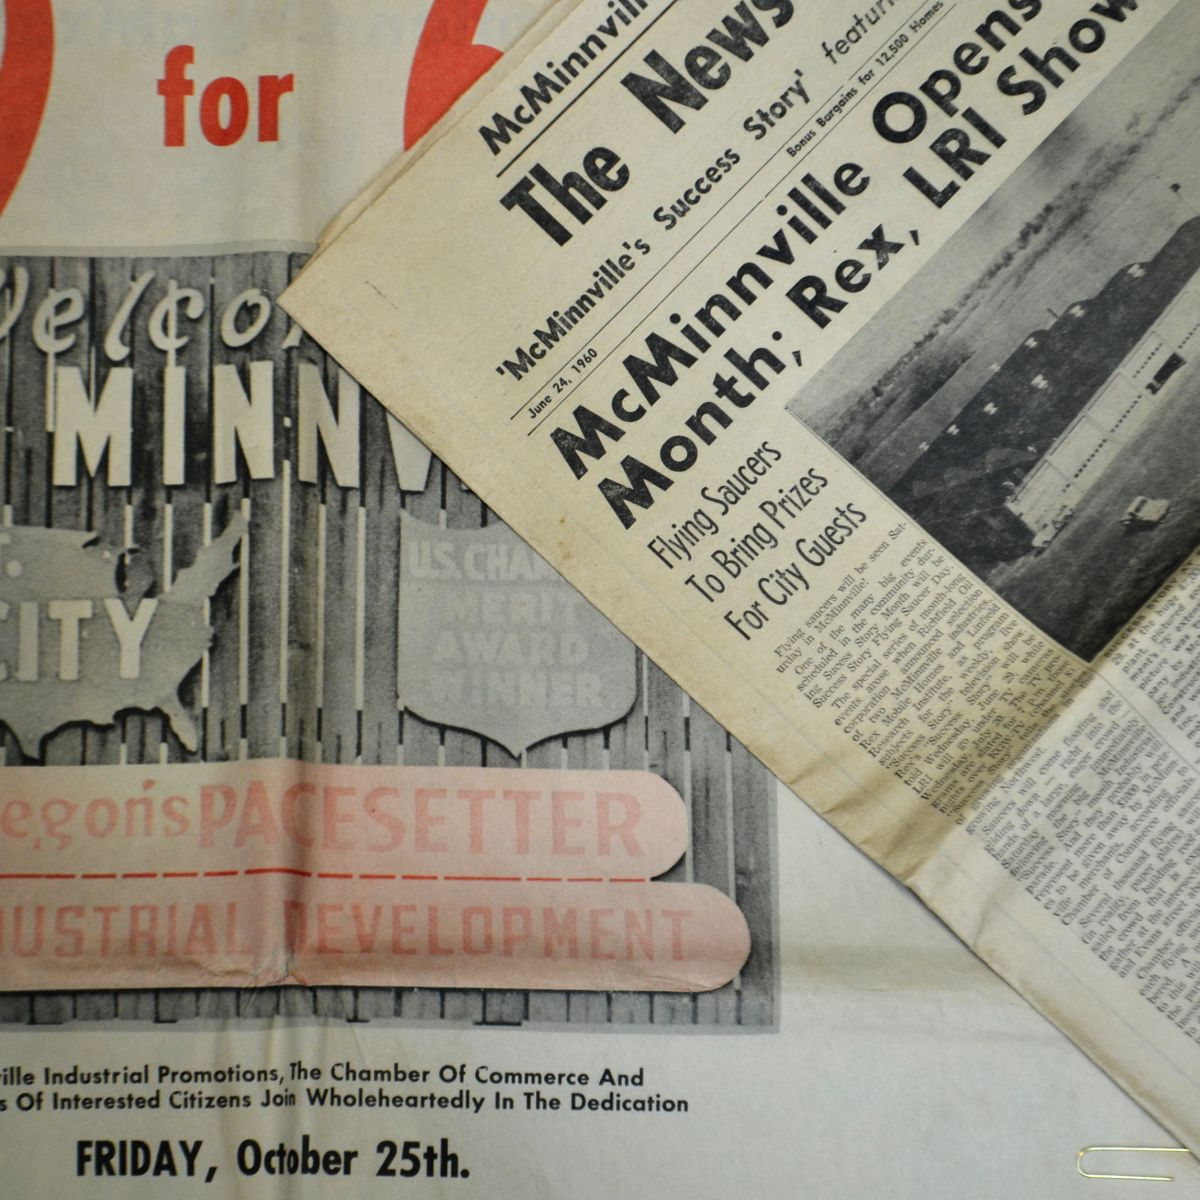 An old newspaper image showing MIP promise of 9 for '69